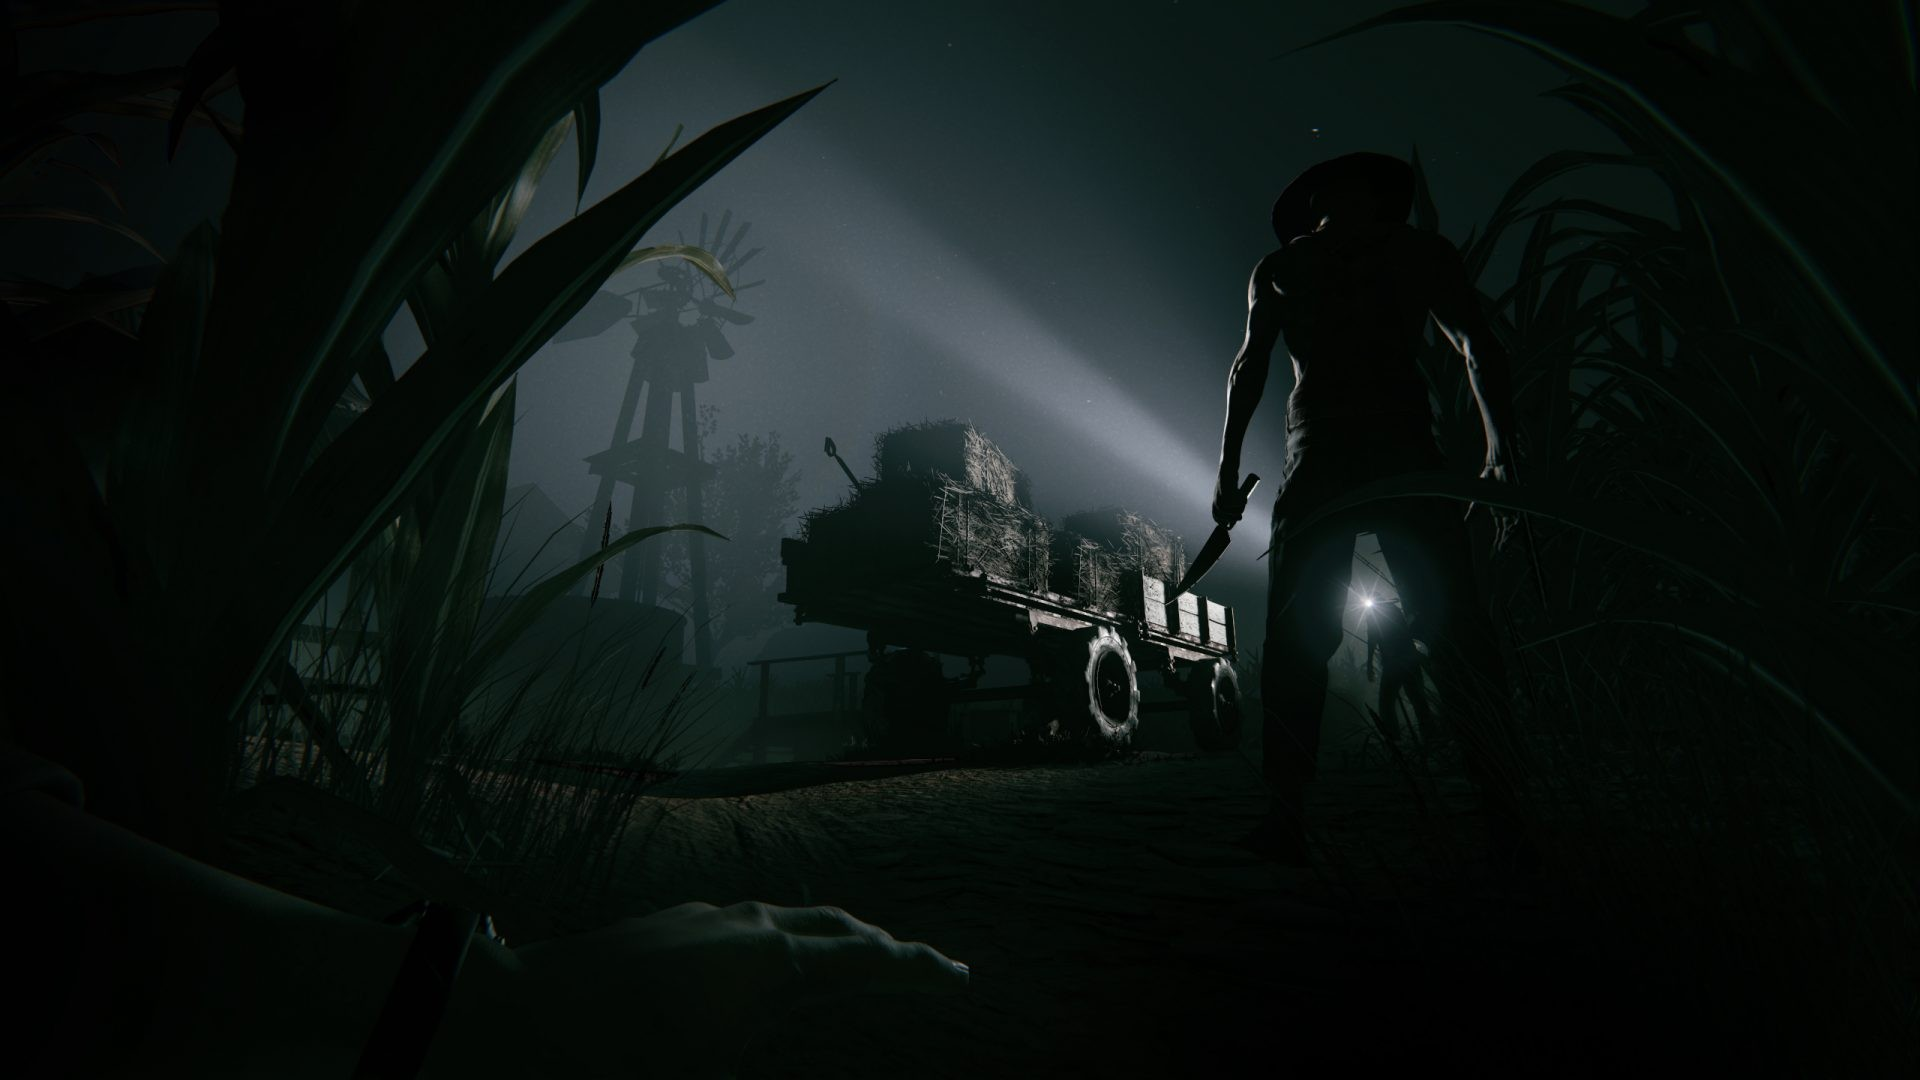 background - Vyzkoušejte si demo Outlast 2